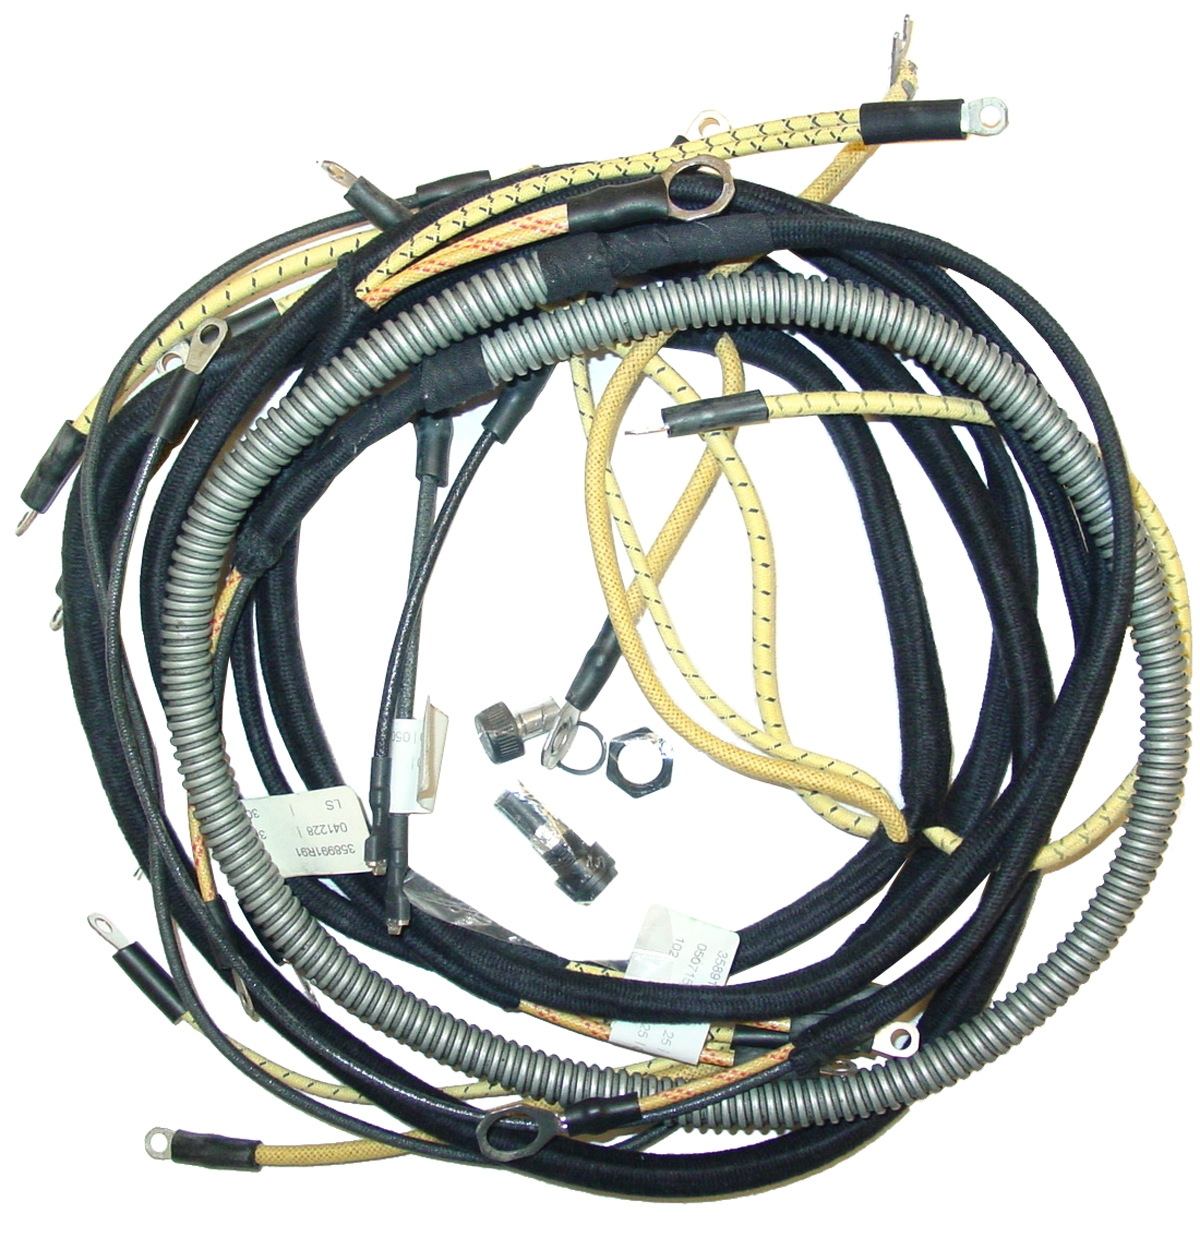 IHS488 wiring harness case ih parts case ih tractor parts farmall 656 wiring harness at panicattacktreatment.co